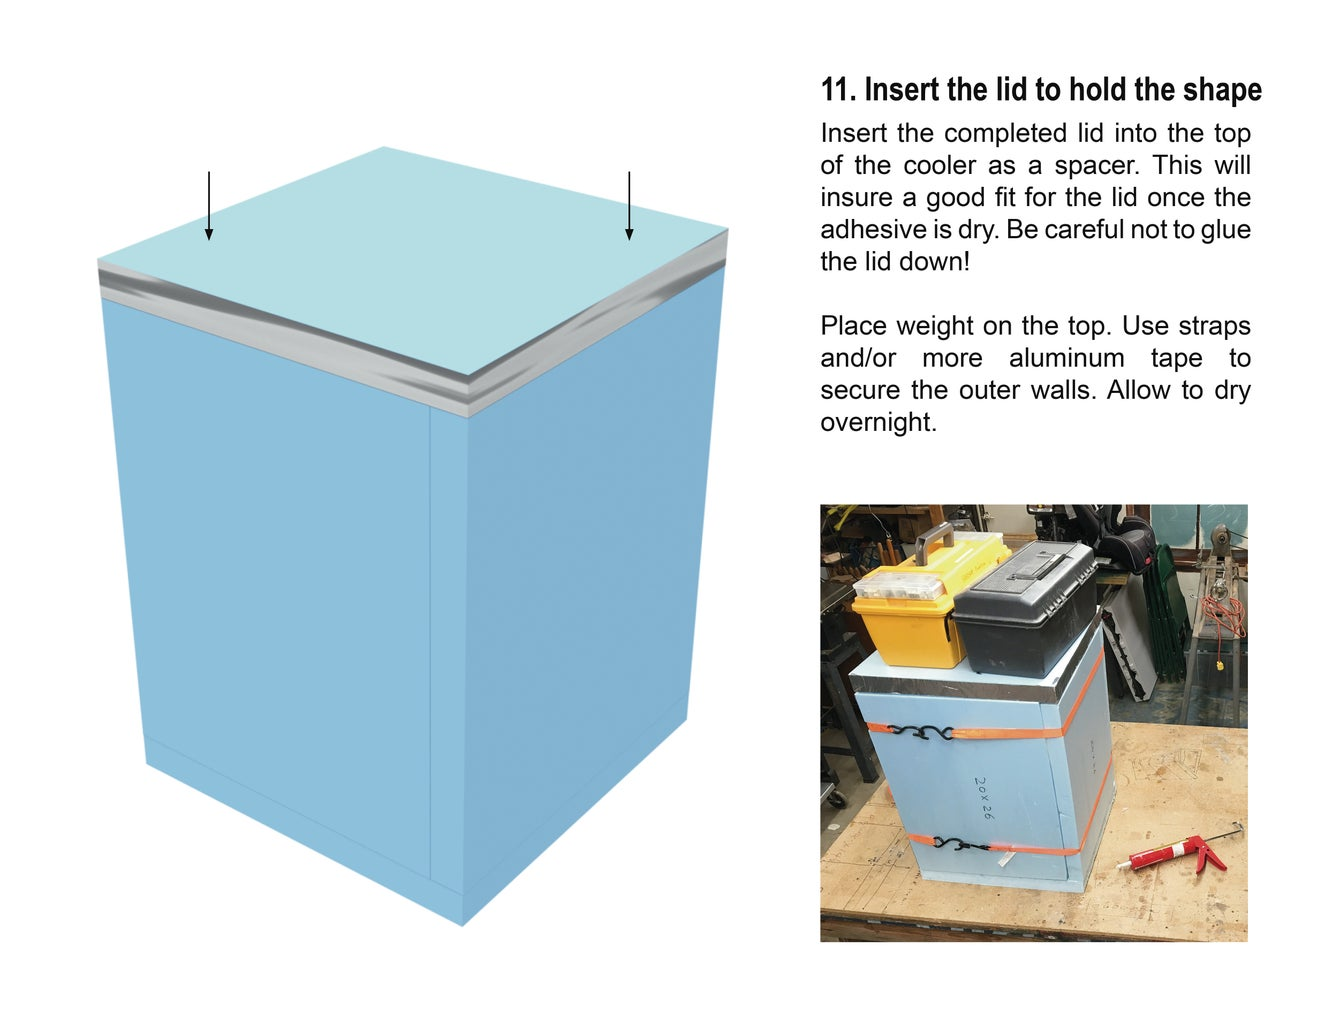 Assemble the Cooler From Foam Sheets